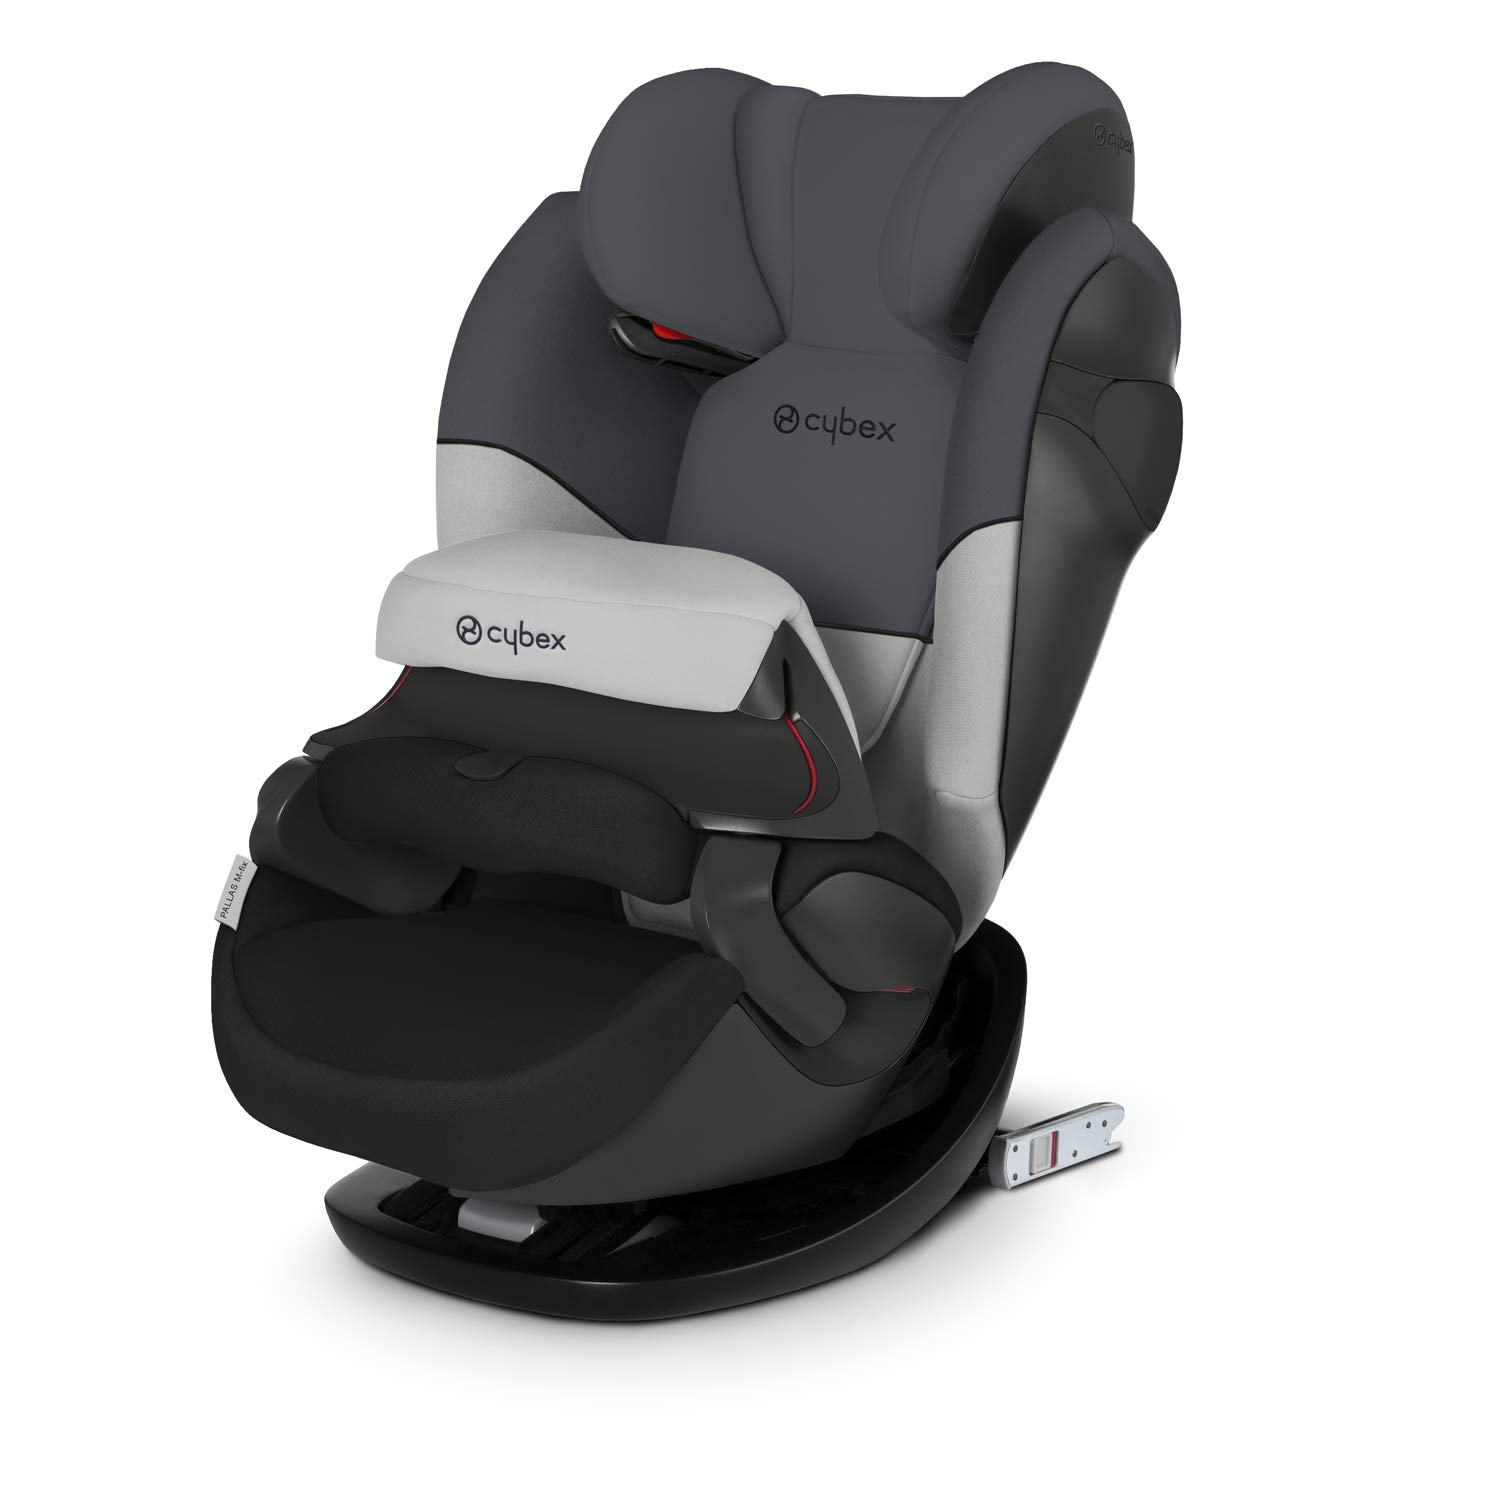 Cybex Silver Pallas M-Fix, 2-in-1 Child's Car Seat, Adjustable Impact Safety Shield and ISOFIX Compatible, Group 1/2/3 (9-36 kg), From Approx. 9 Months to Approx. 12 Years, Gray Rabbit